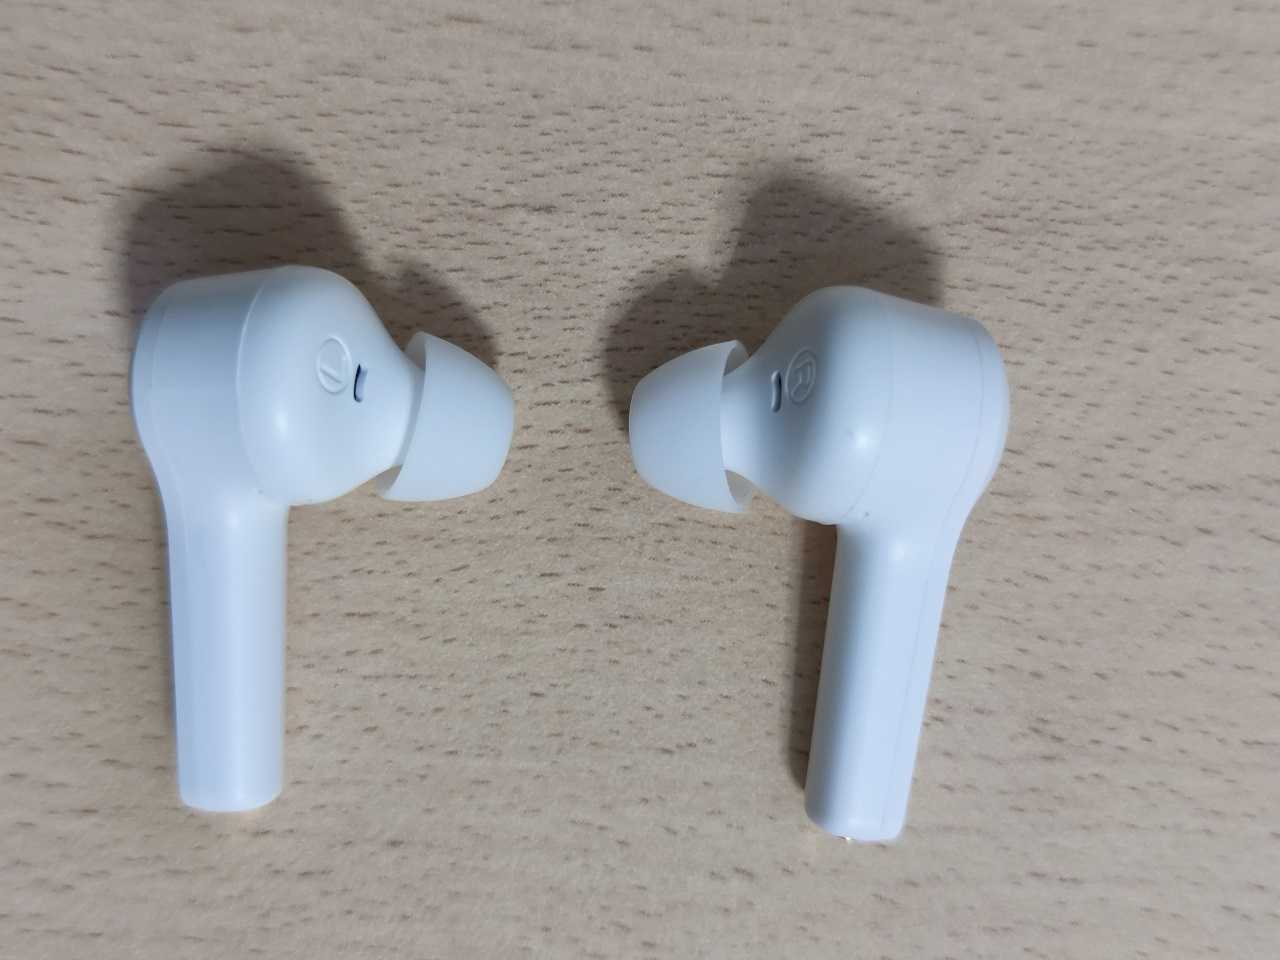 Choetech BH-T01 review: the new inexpensive true-wireless earphones